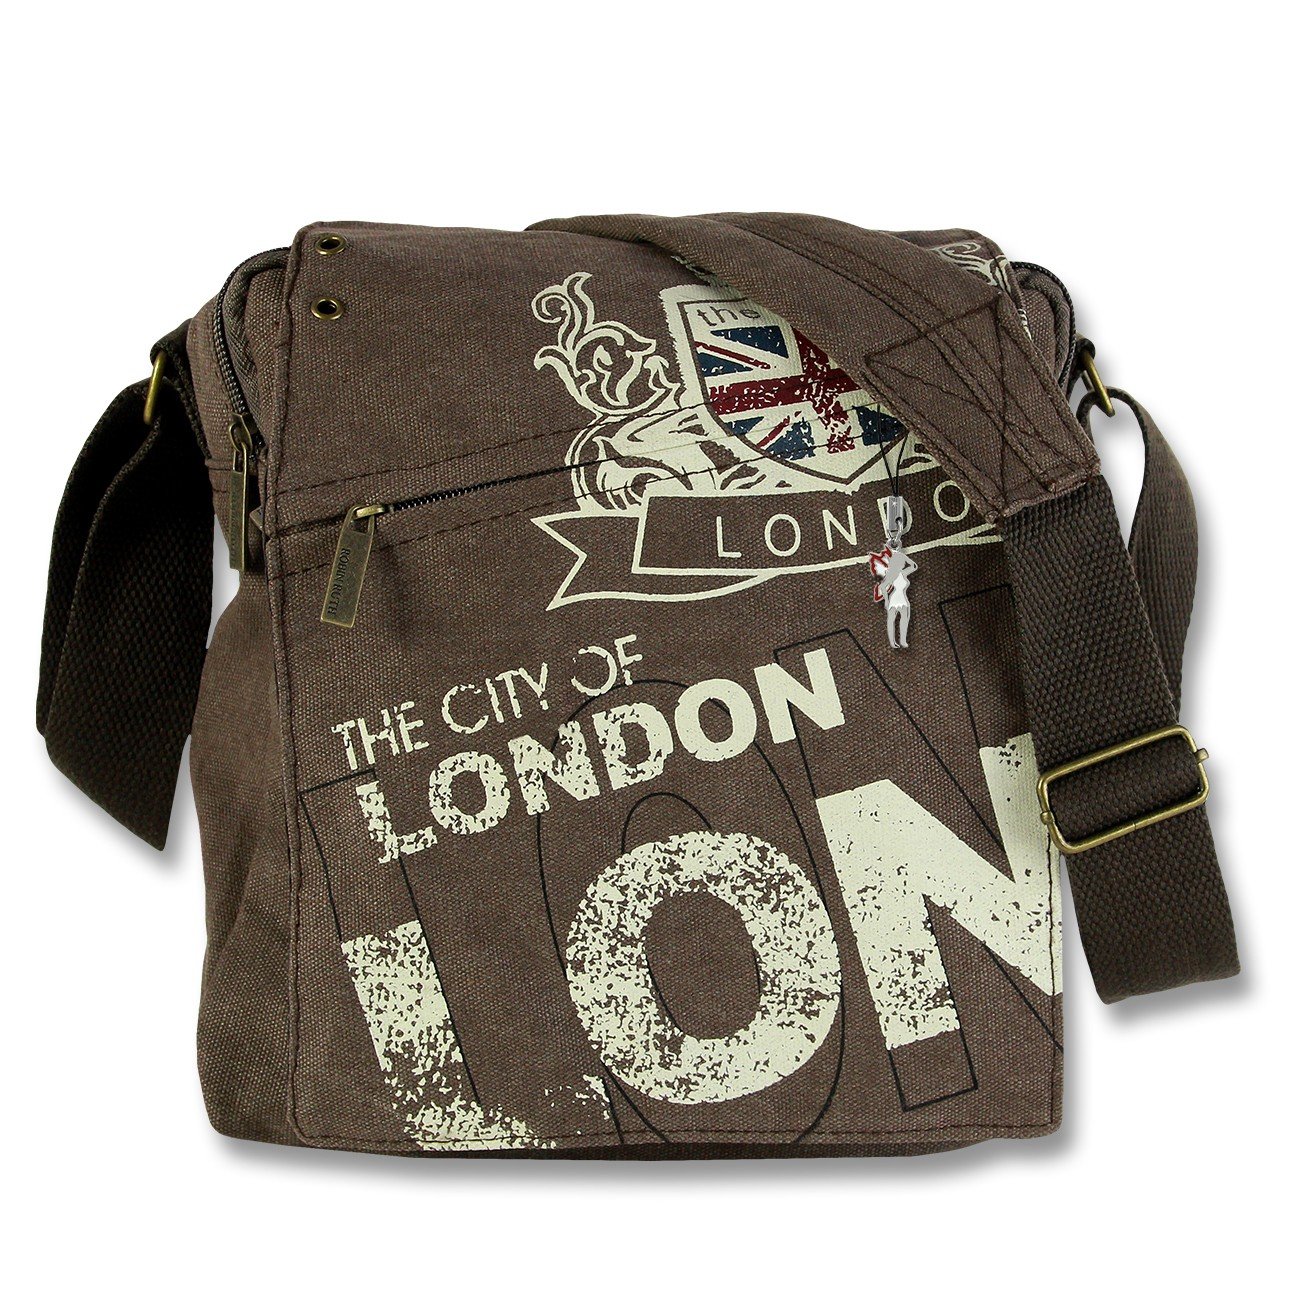 Umhängetasche Canvas braun London Crossover Messenger Robin Ruth OTG202N